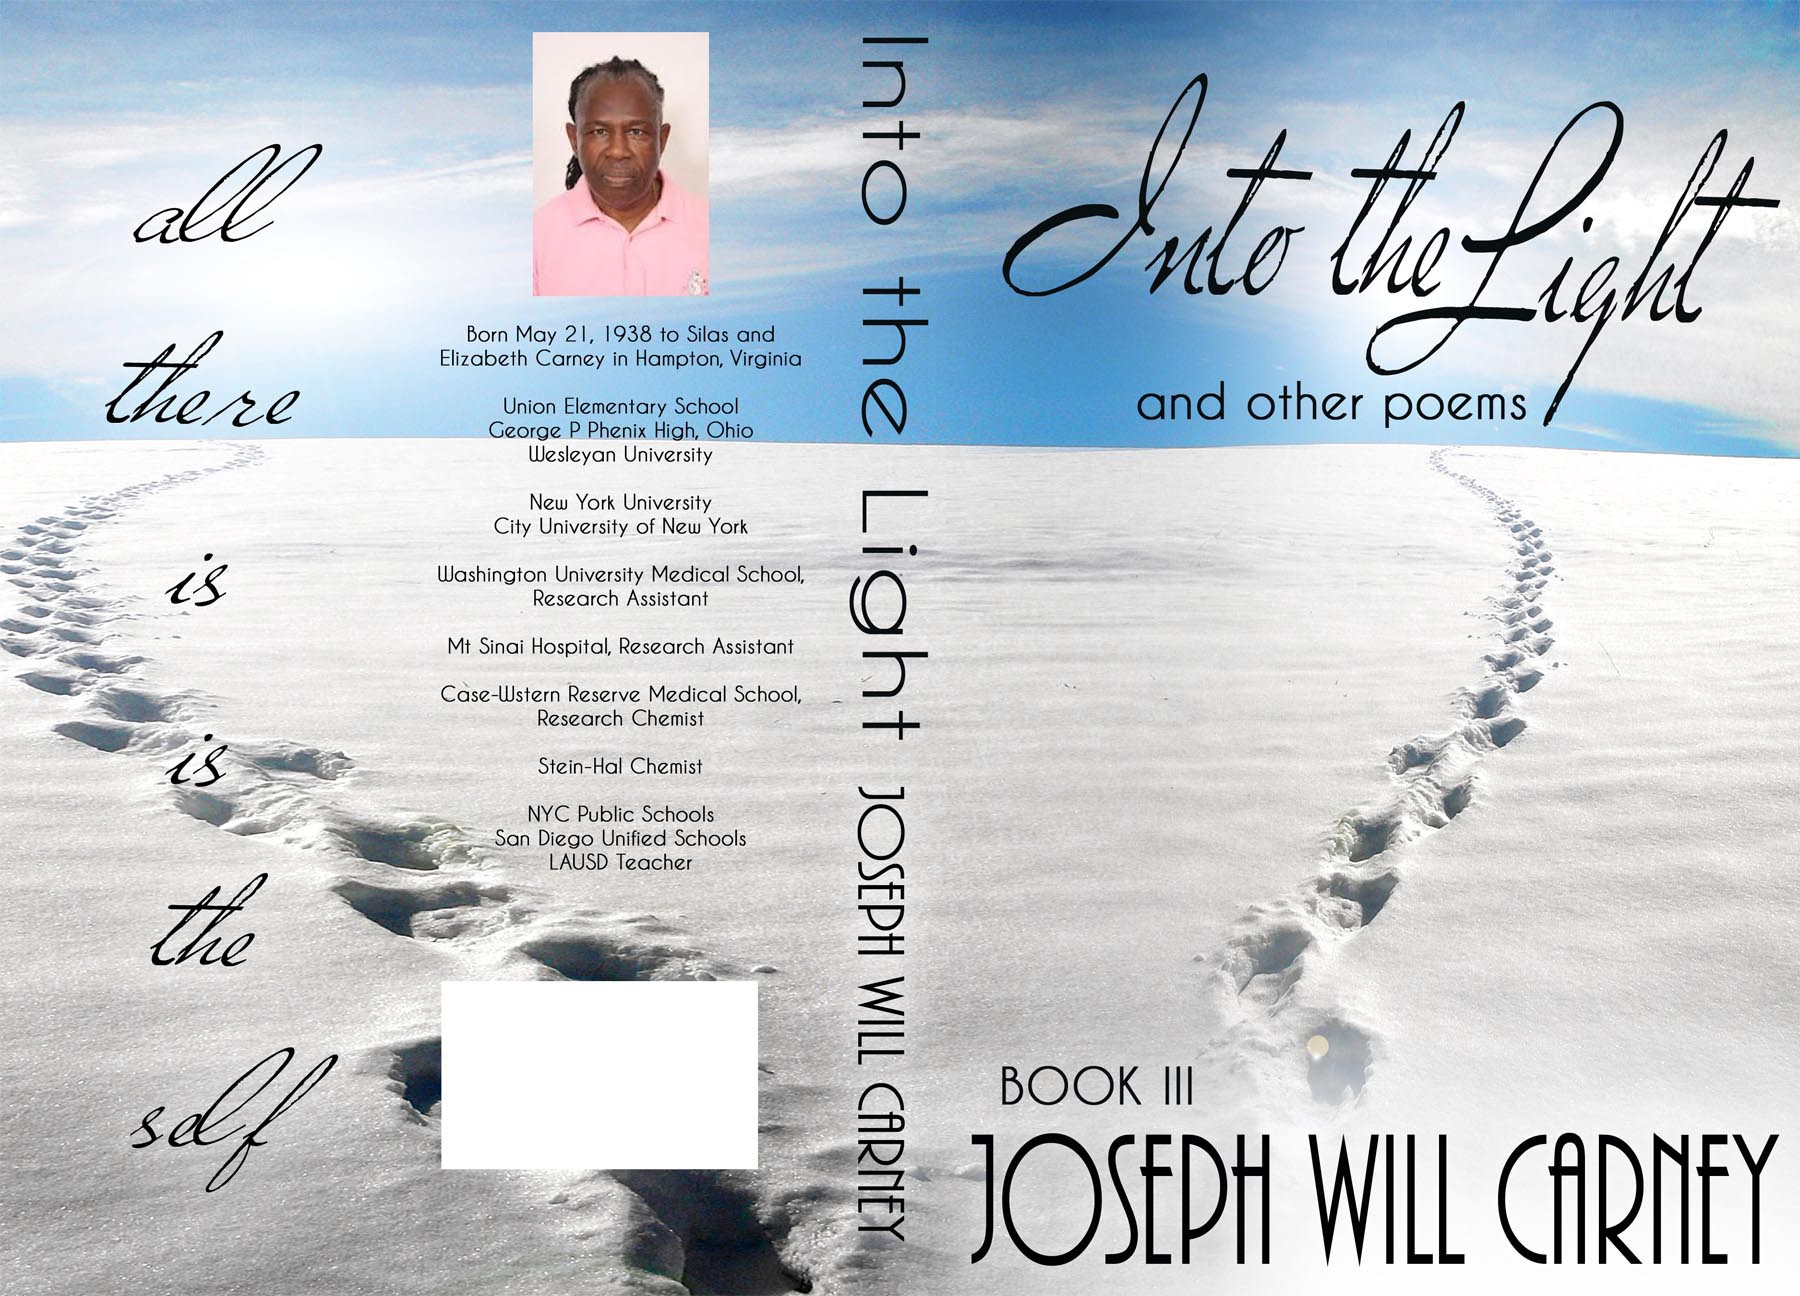 Help josephwillcarney with a new book or magazine cover